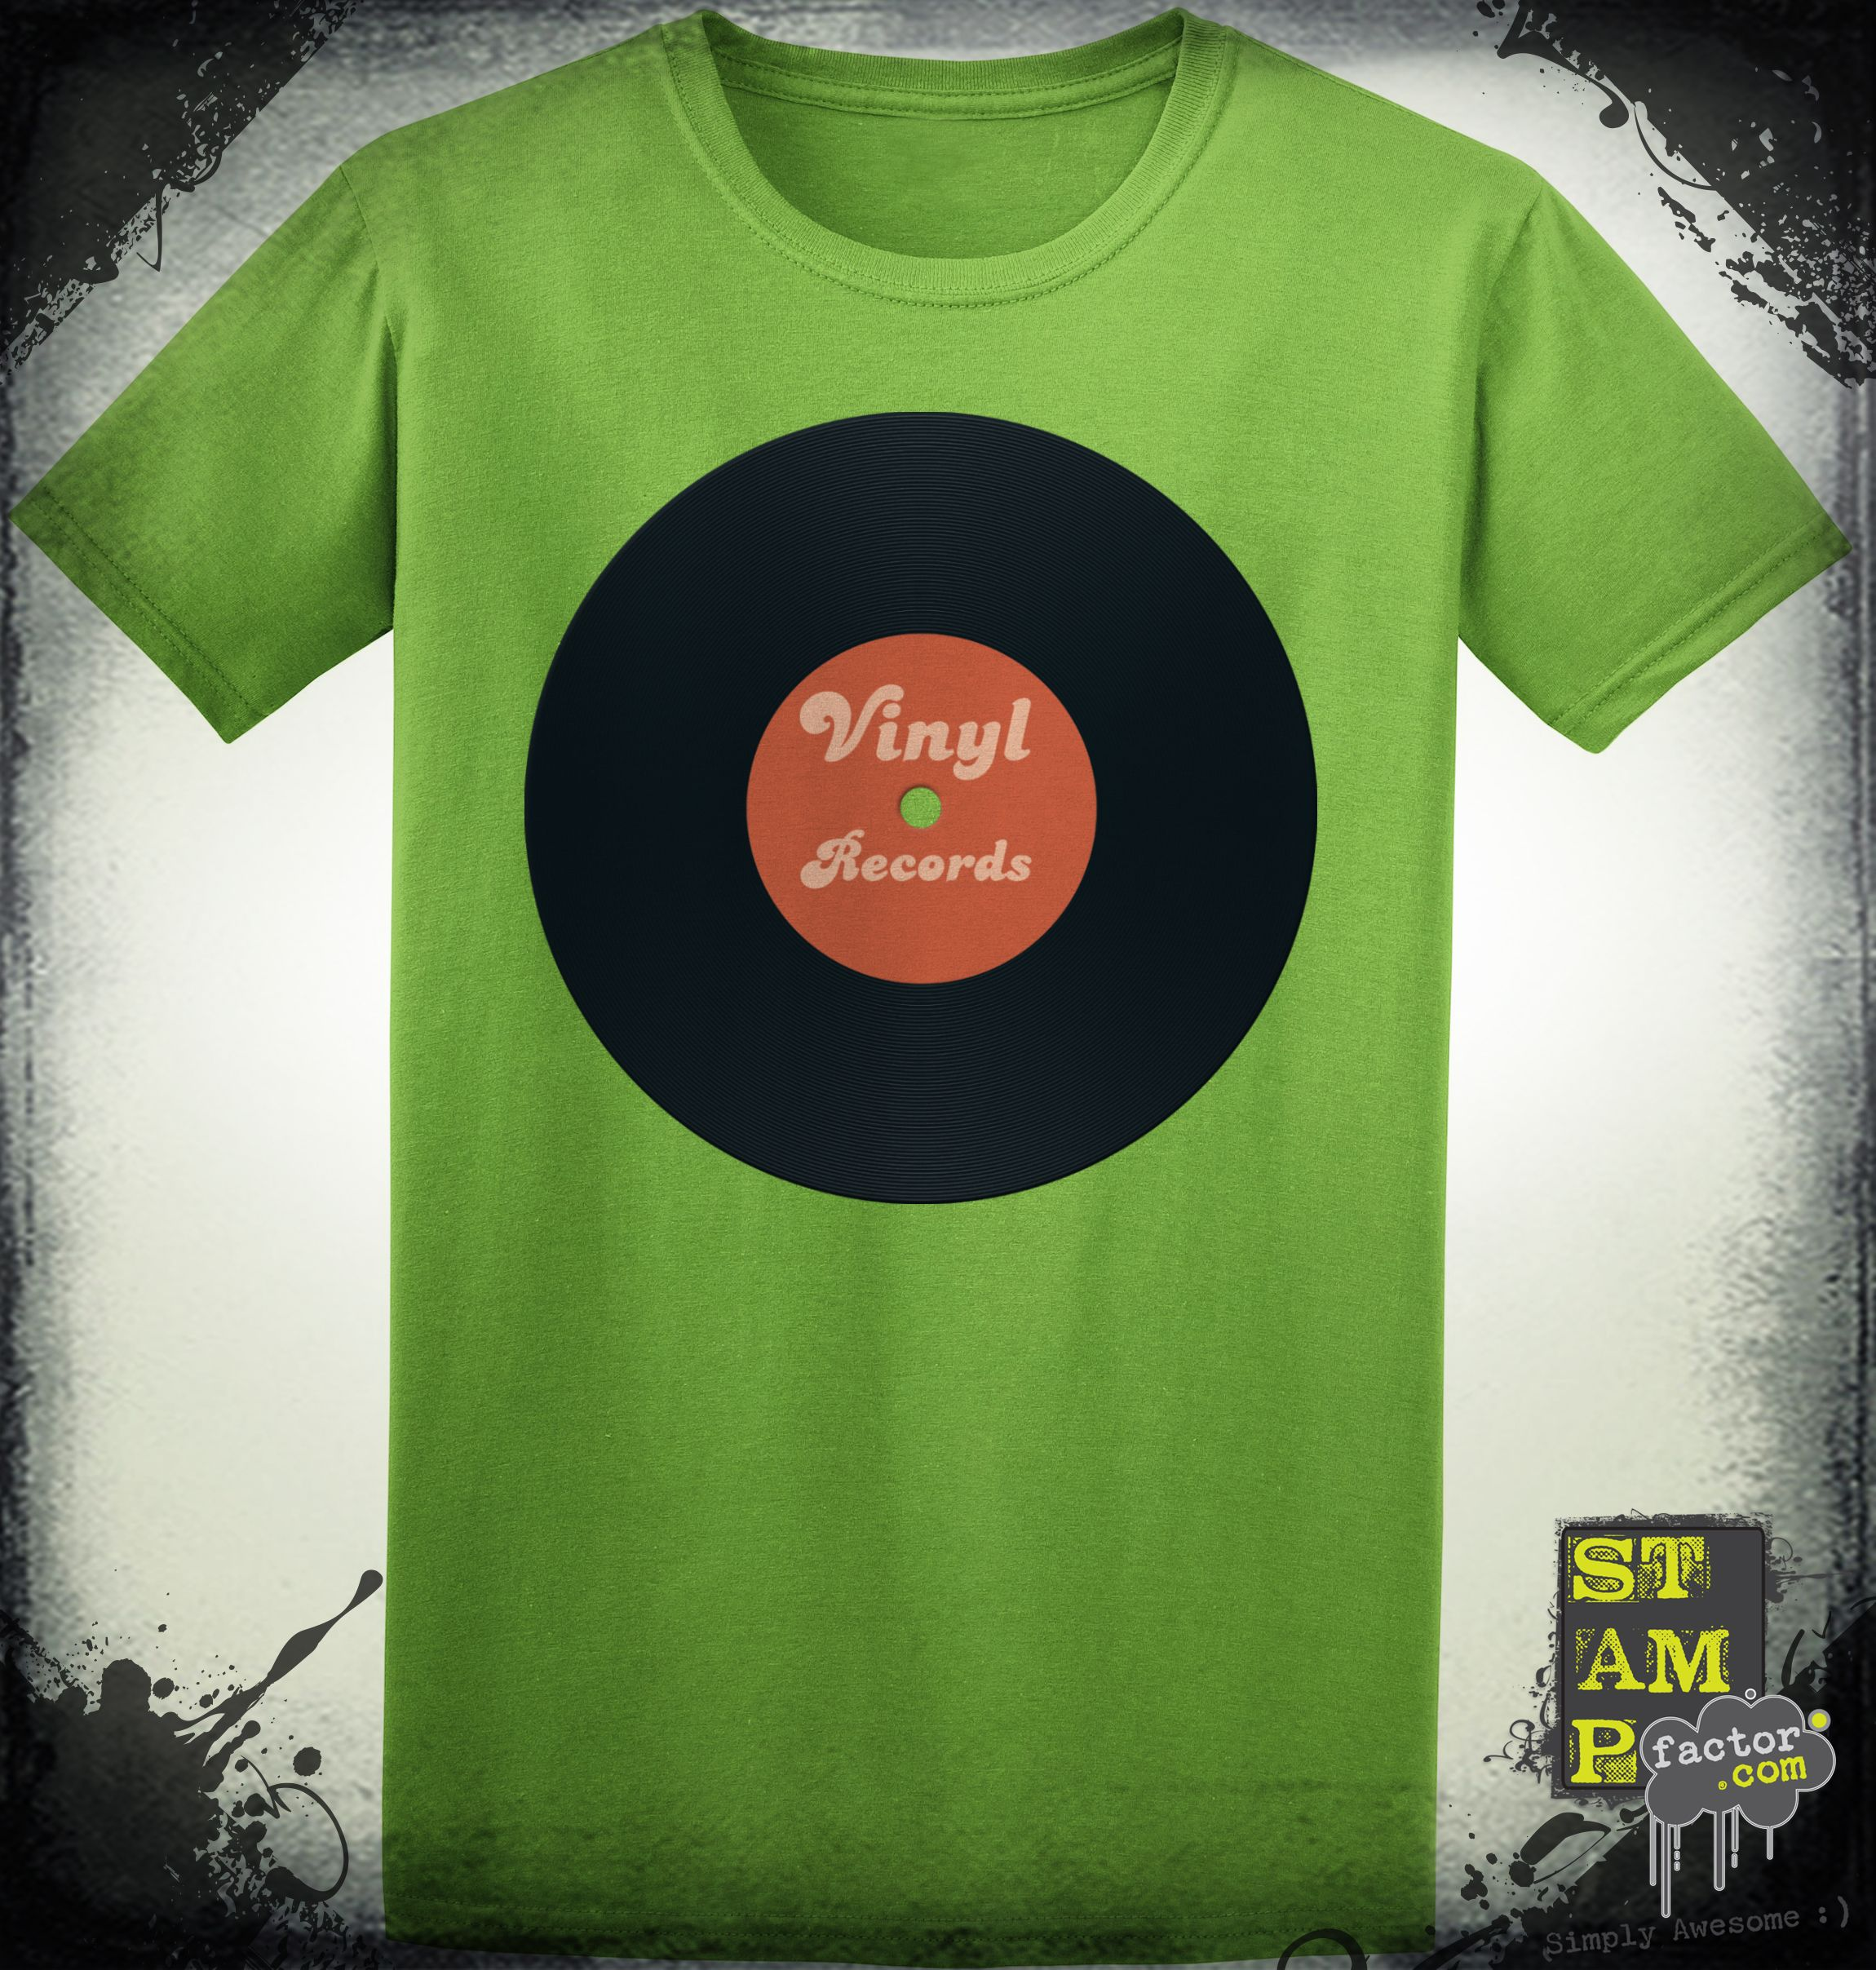 I Love Vinyl (Version 03) 2015 Collection - © stampfactor.com *T-SHIRT PREVIEW*